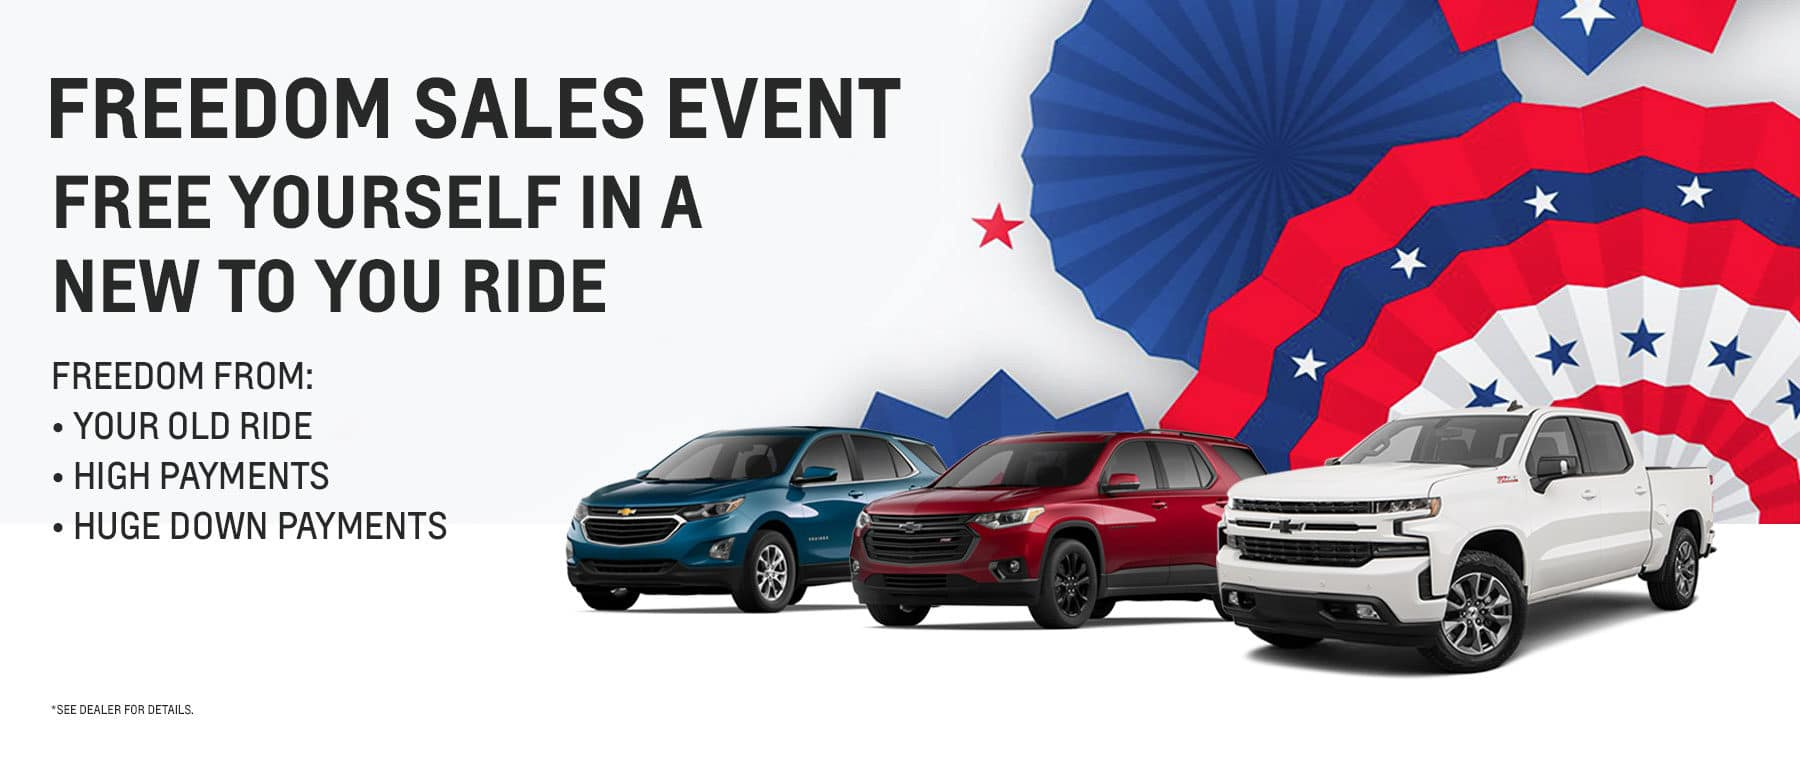 Freedom Sales Event, Free Yourself in a New to You Ride | Freedom From: Your Old Ride, High Payments, Huge Down Payments